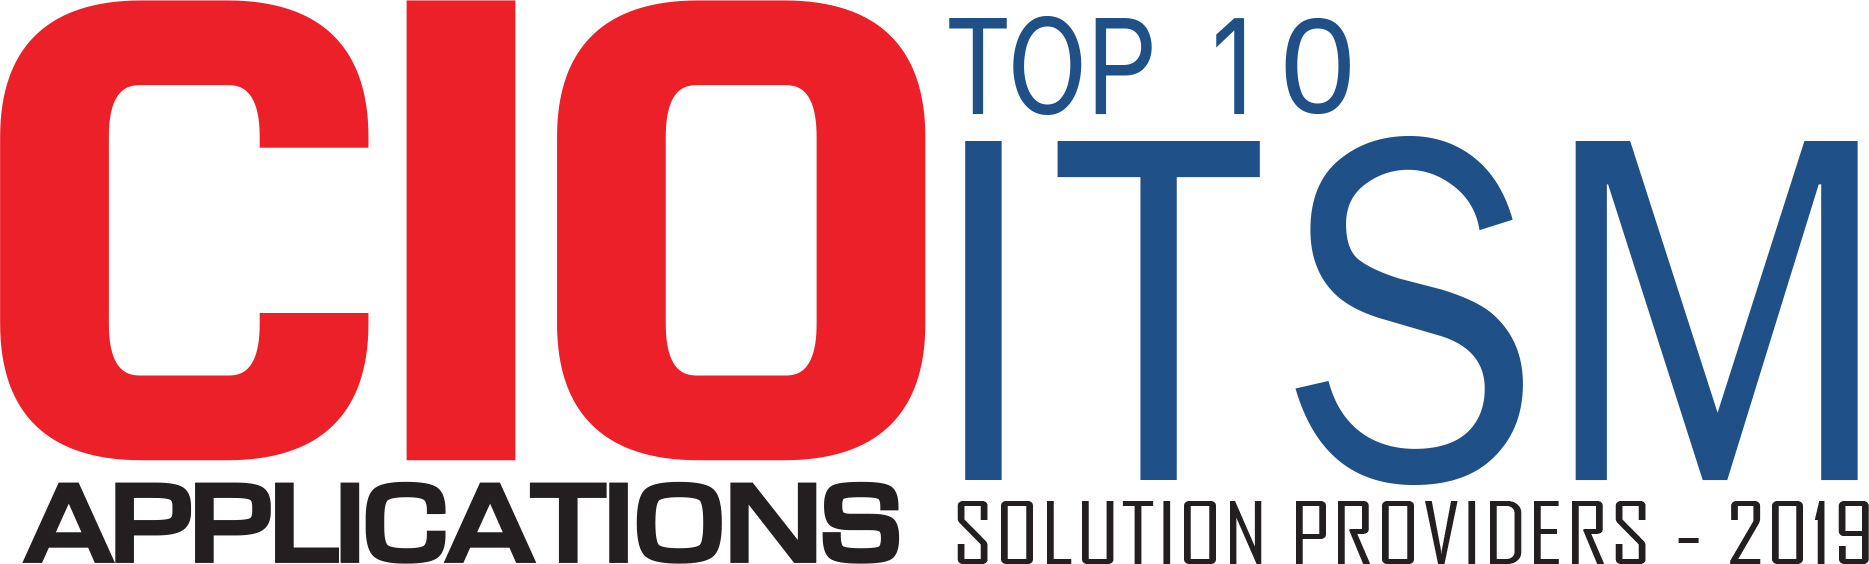 Top 10 ITSM Solution Companies - 2019